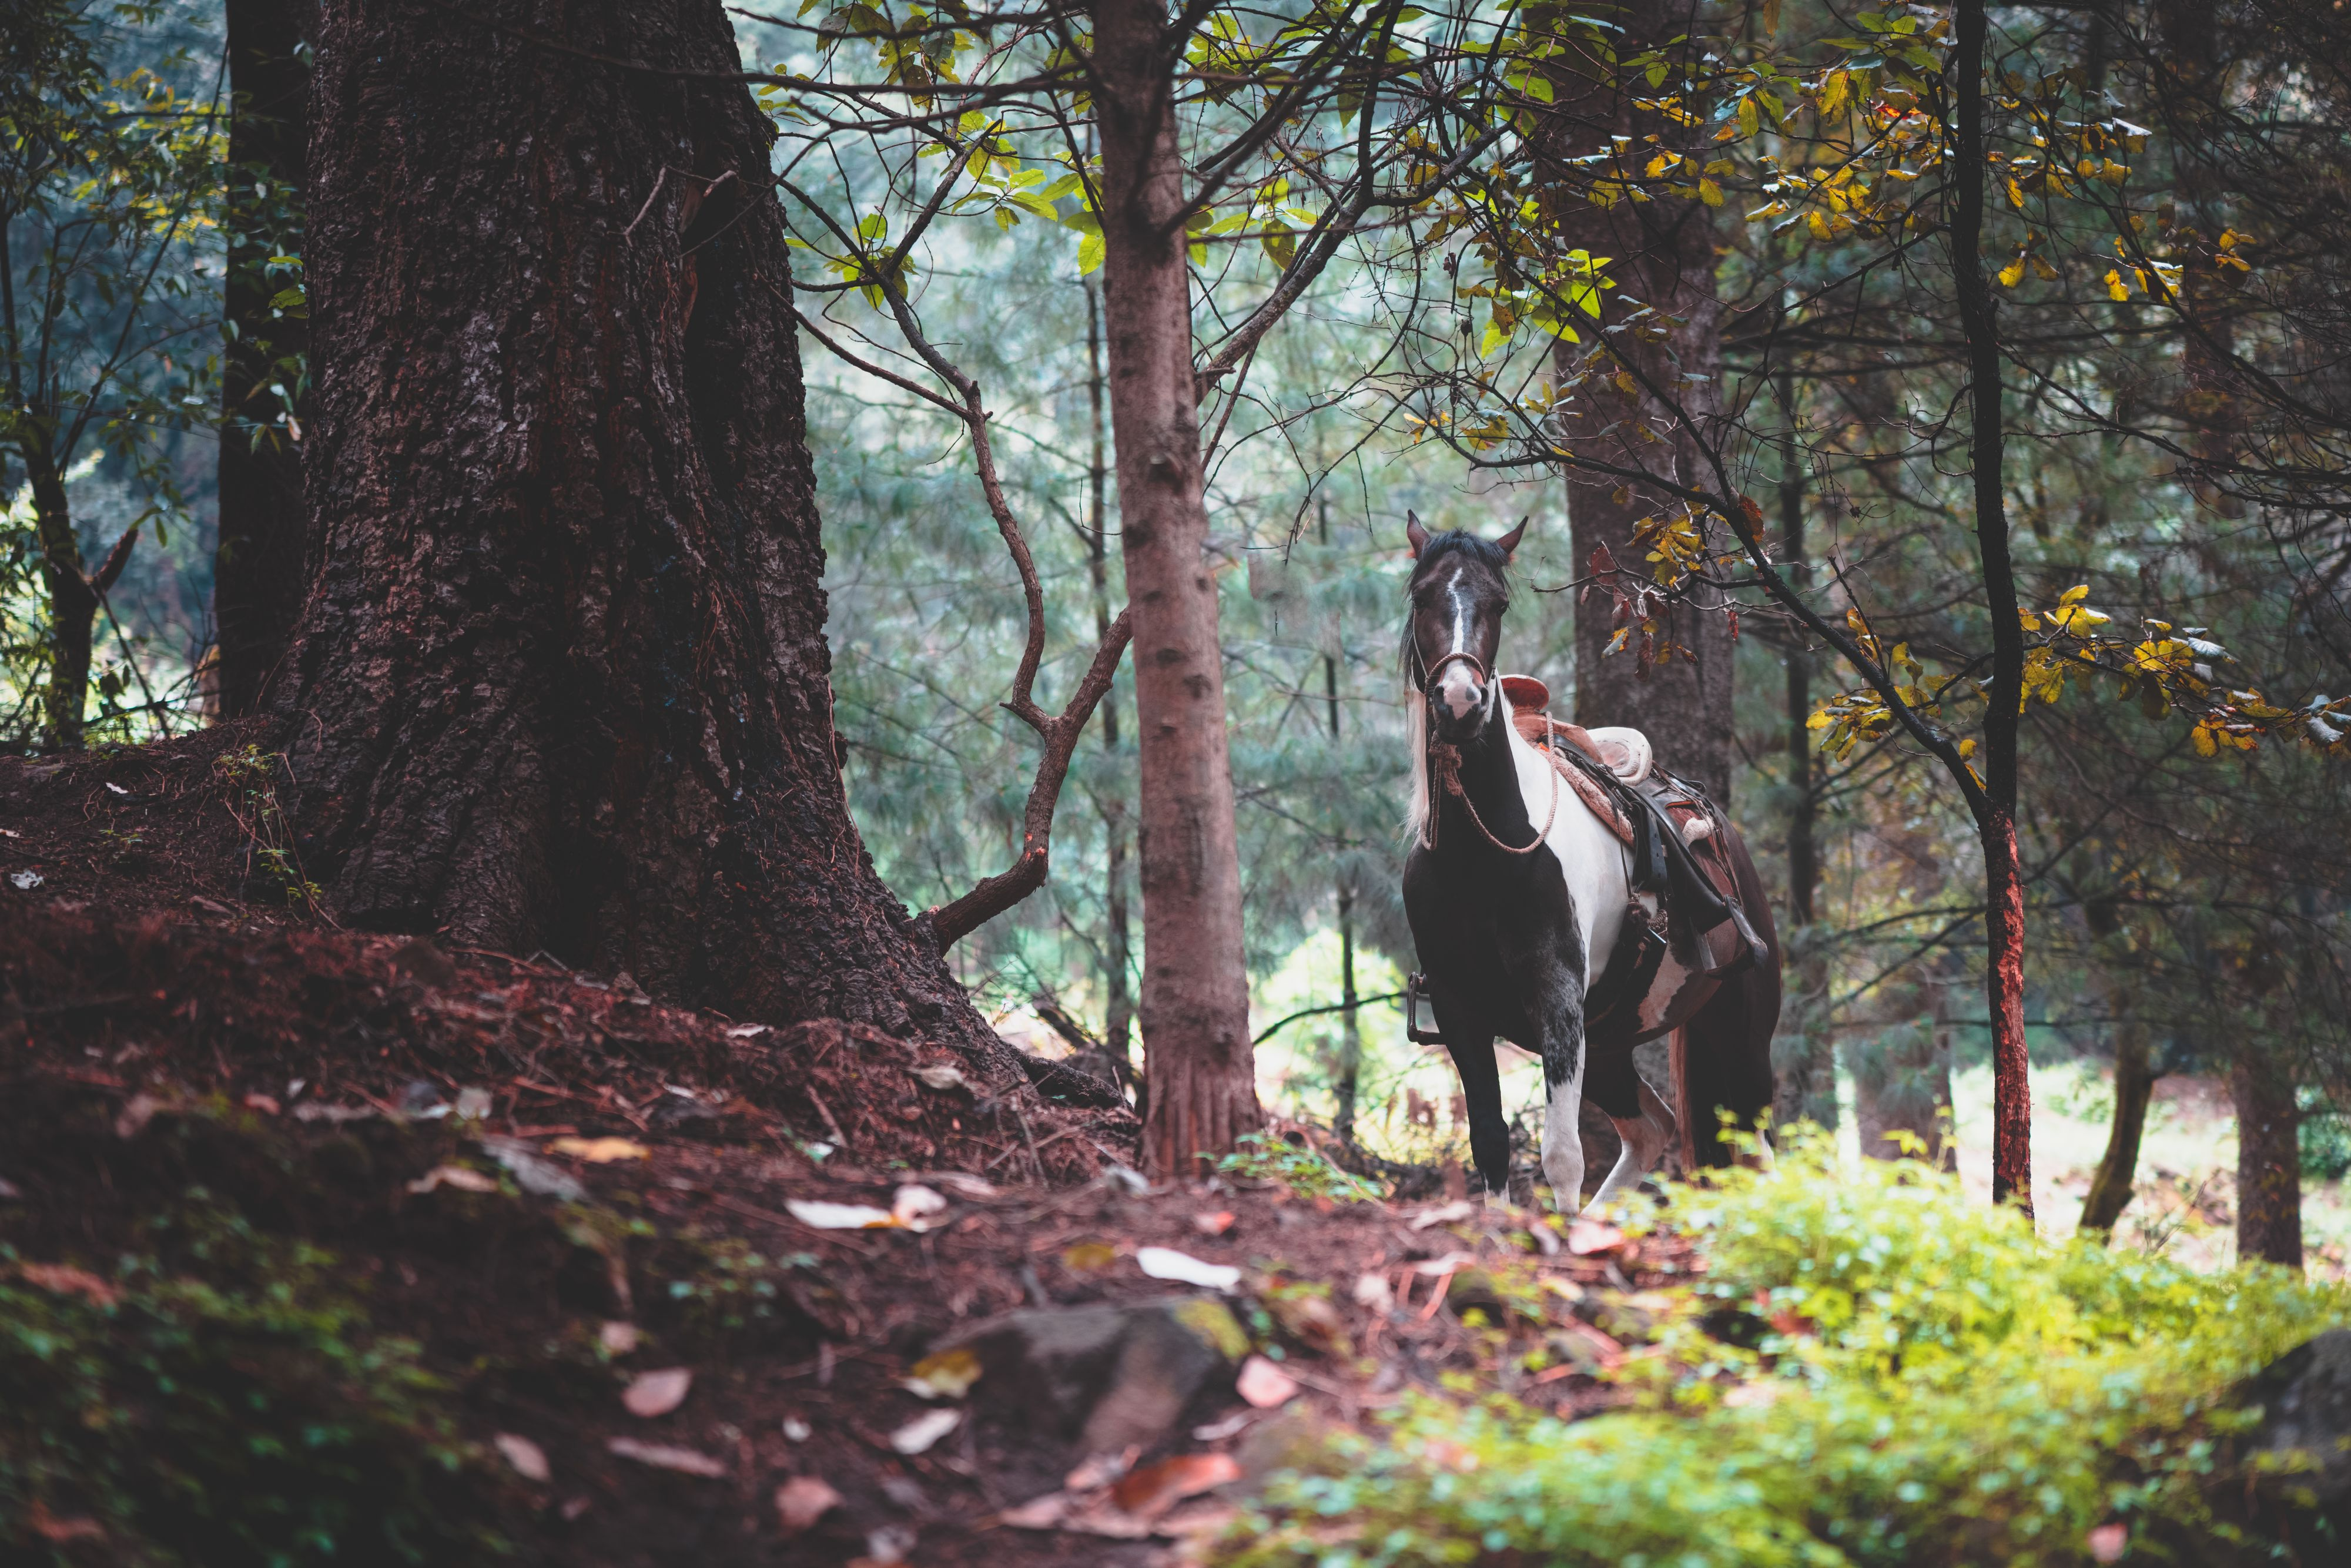 A trip to the forest in Mexico City